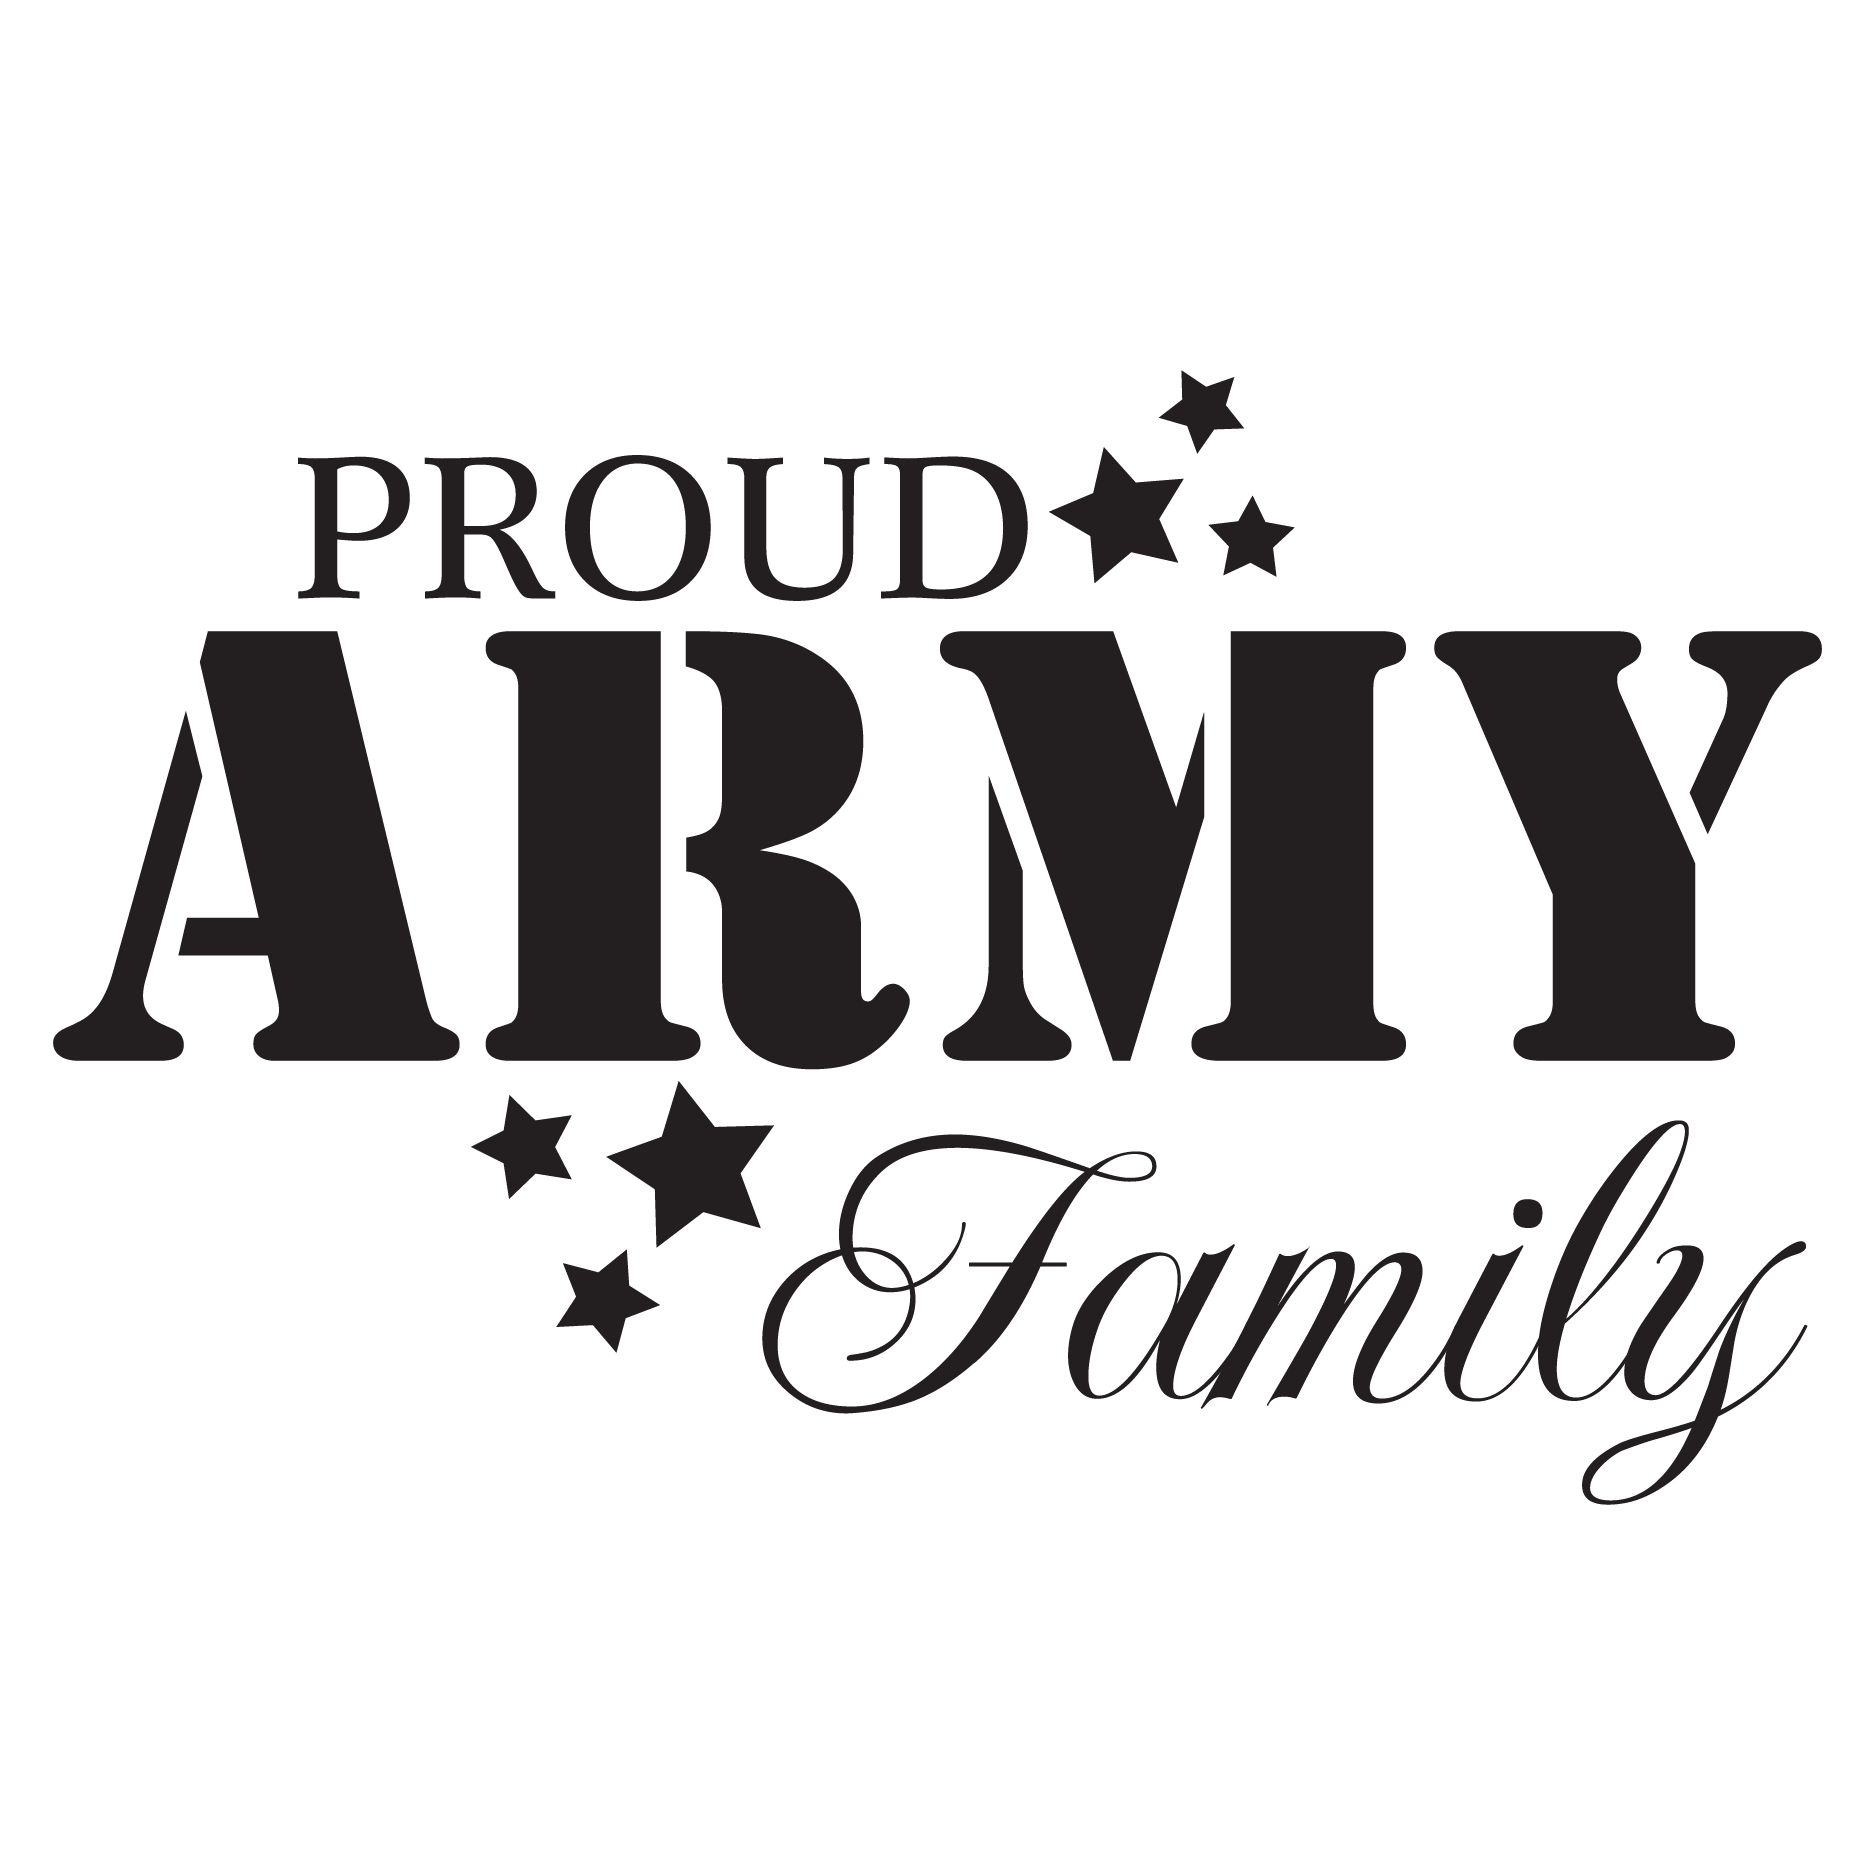 Proud Army Family(stencil) (With images) Army family